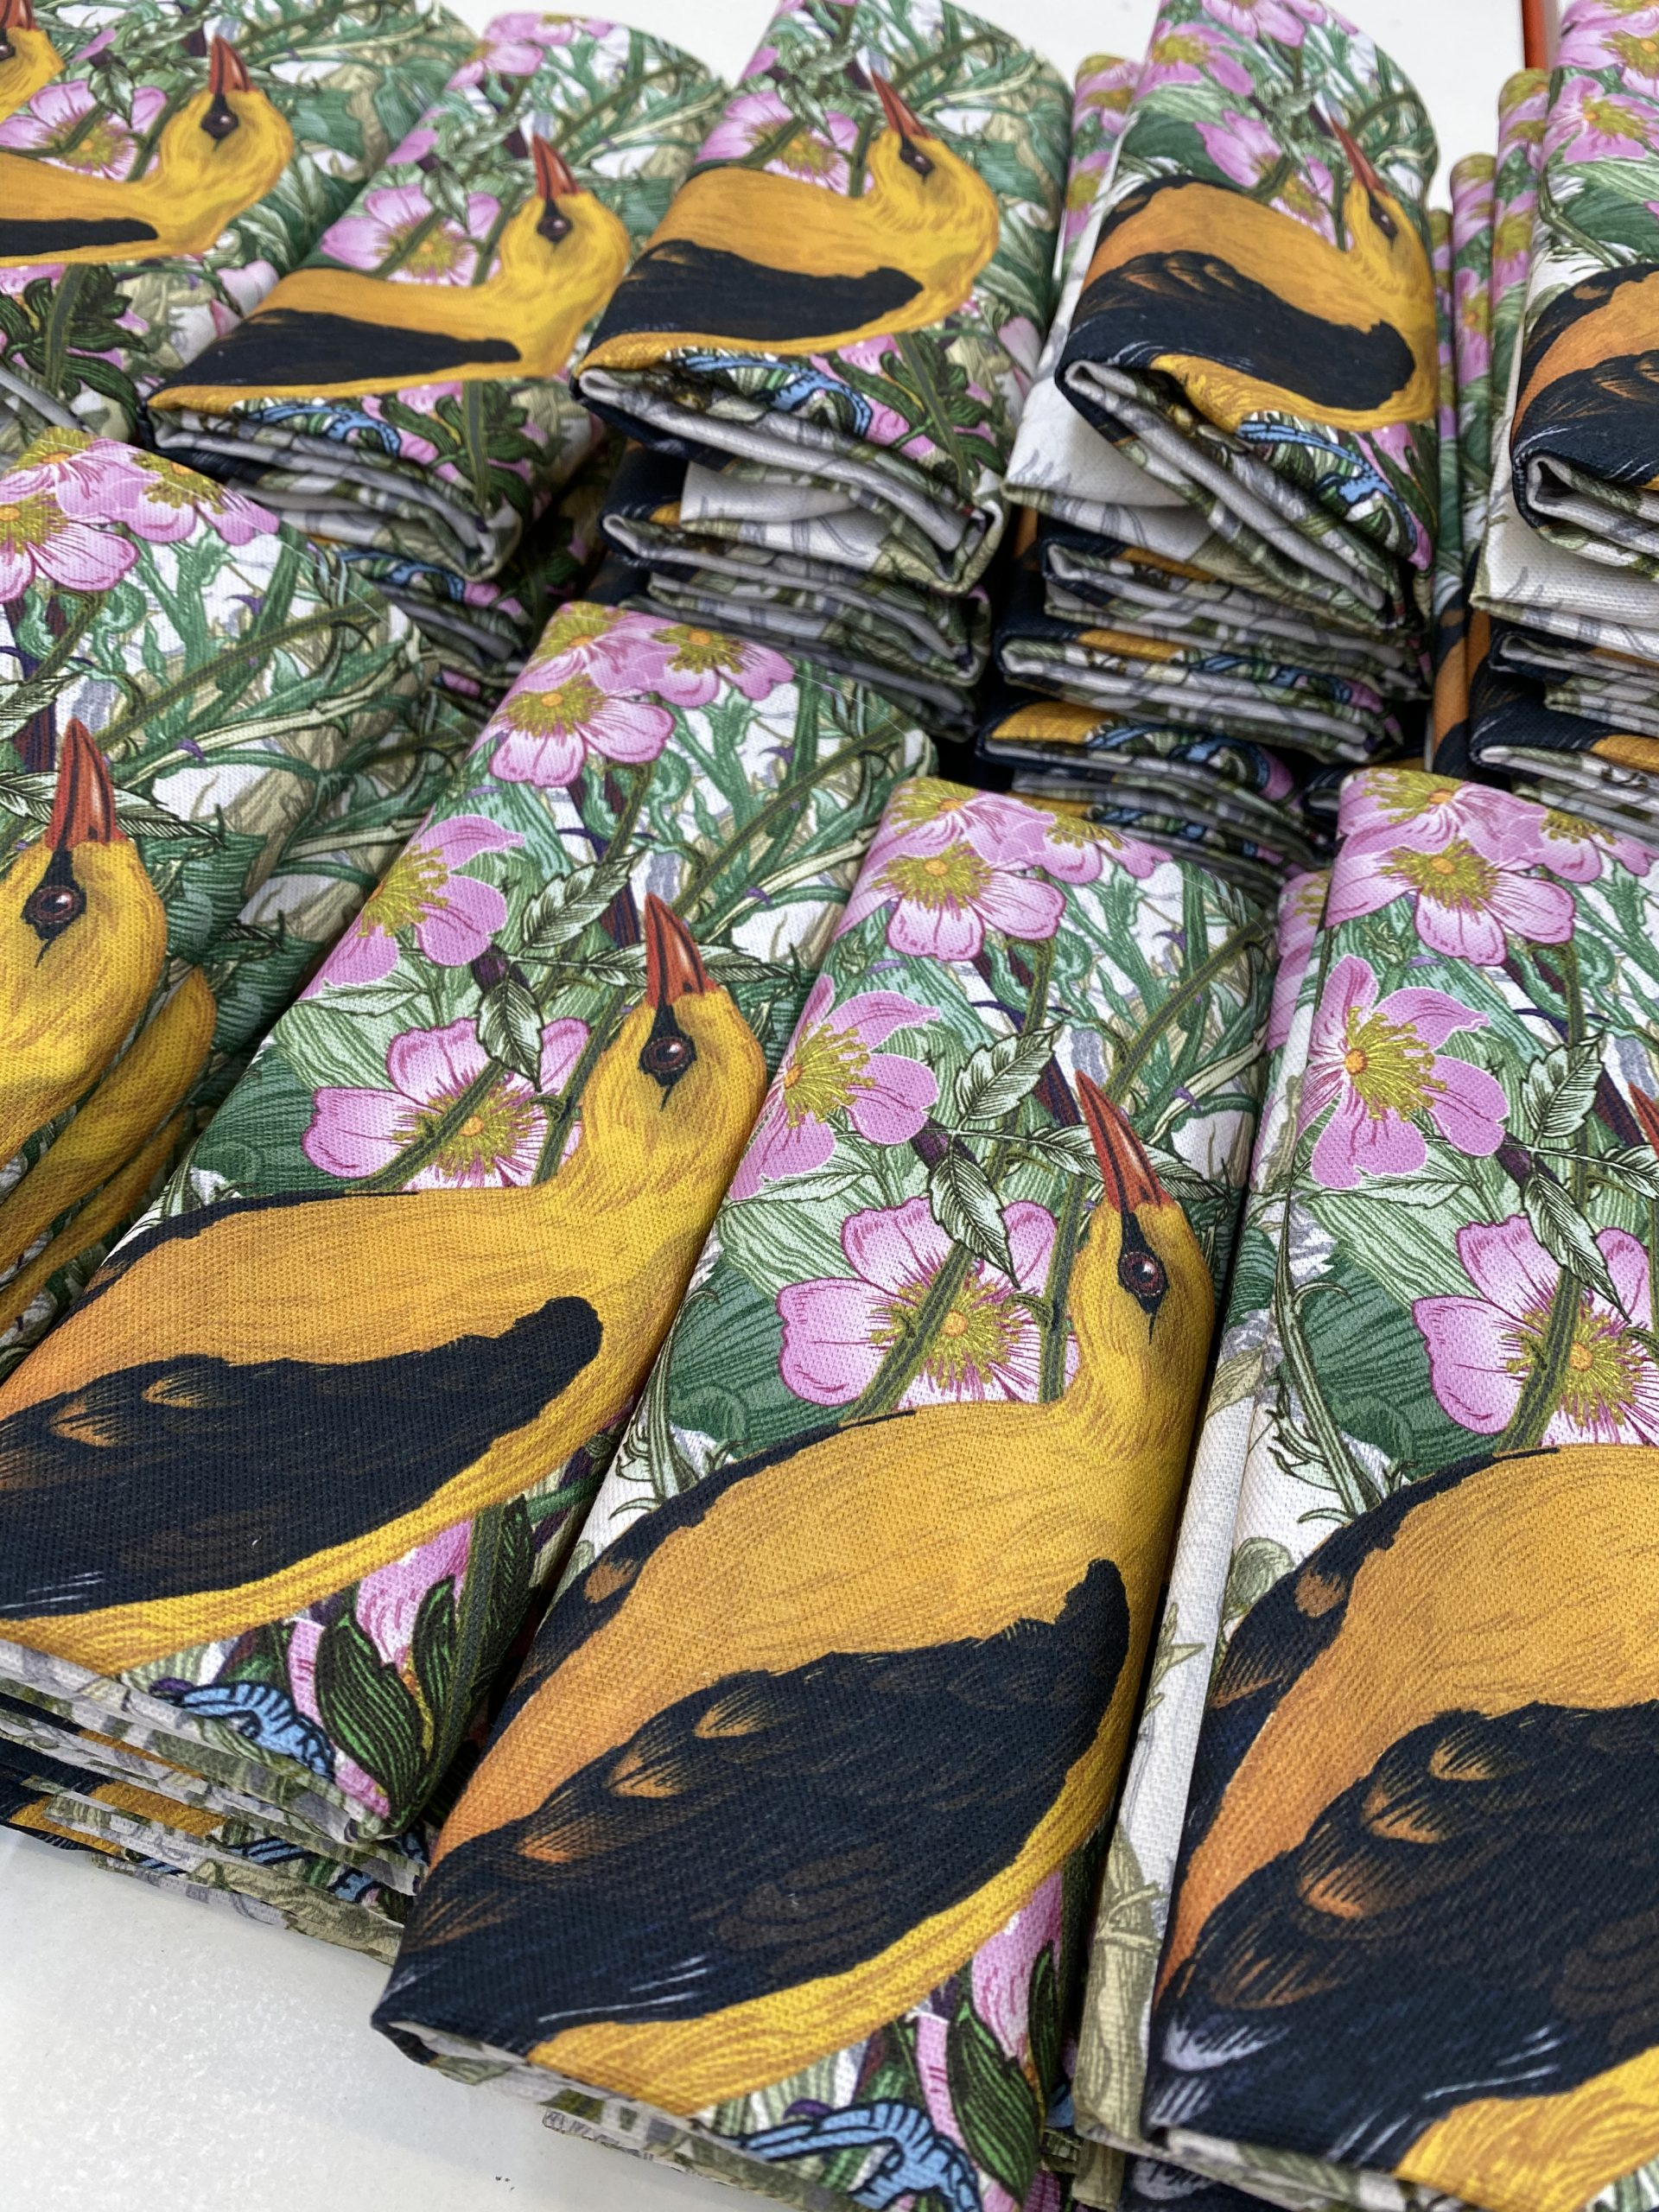 Digitally printed tea towels folded ready for a belly band at Paul Bristow's